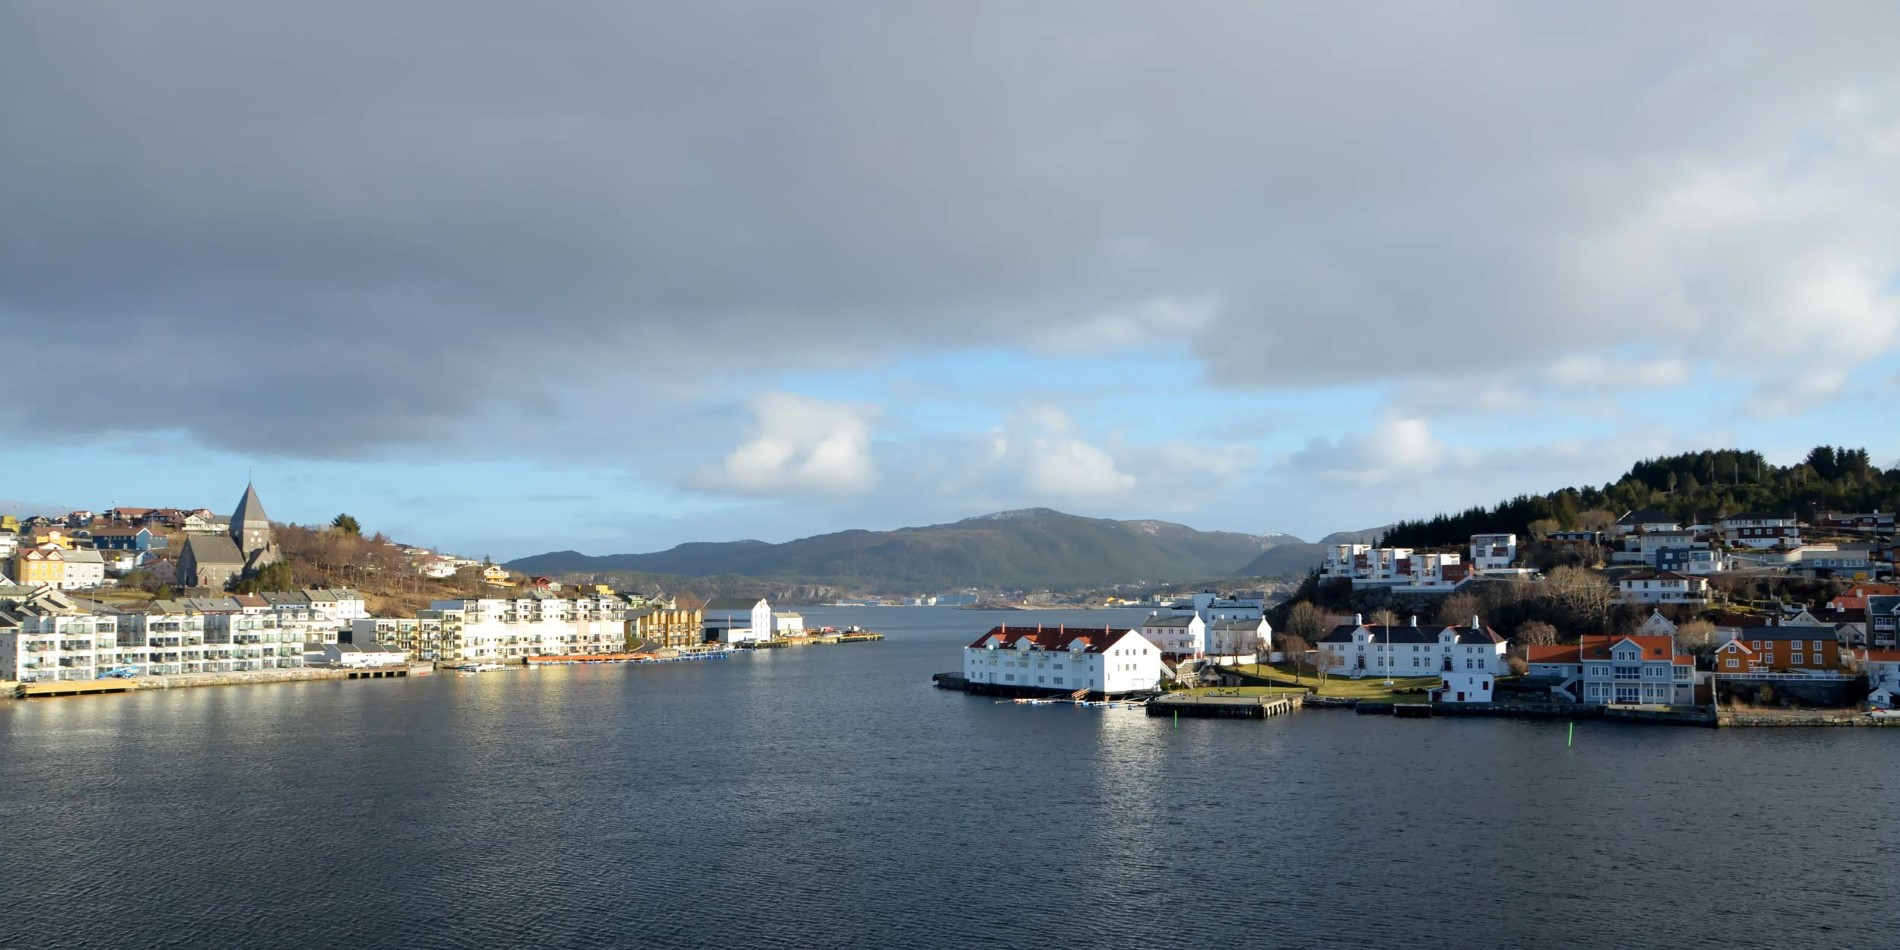 2500x1250_Kristiansund_Afternoon-light_By_Neumayer-Hans_Guest-Image.jpg